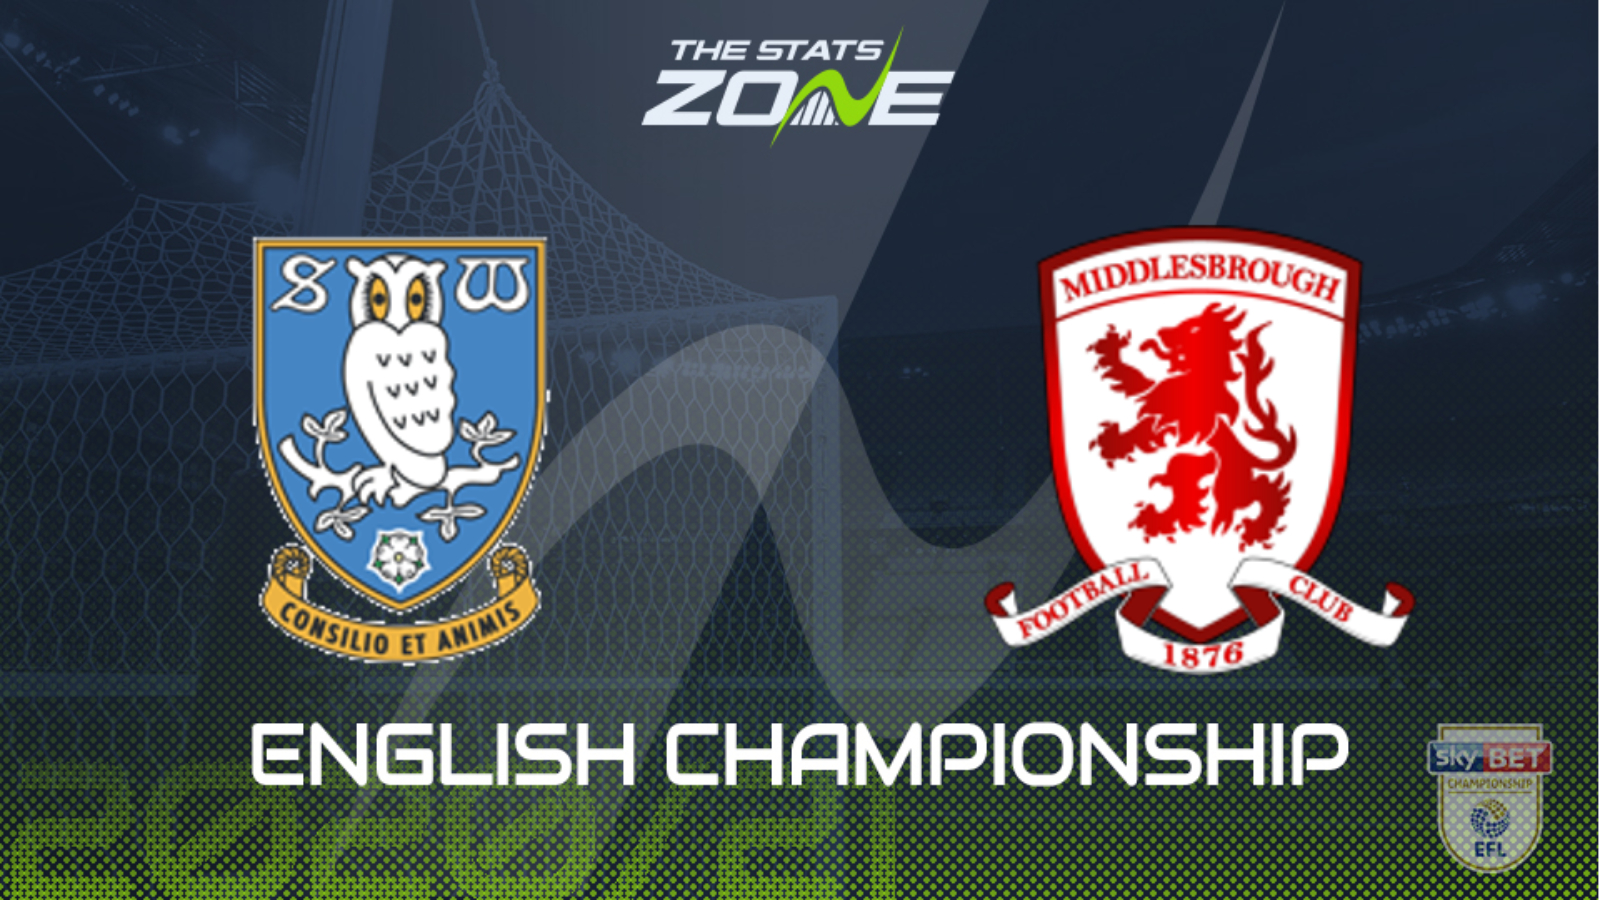 middlesbrough vs sheffield wednesday betting tips